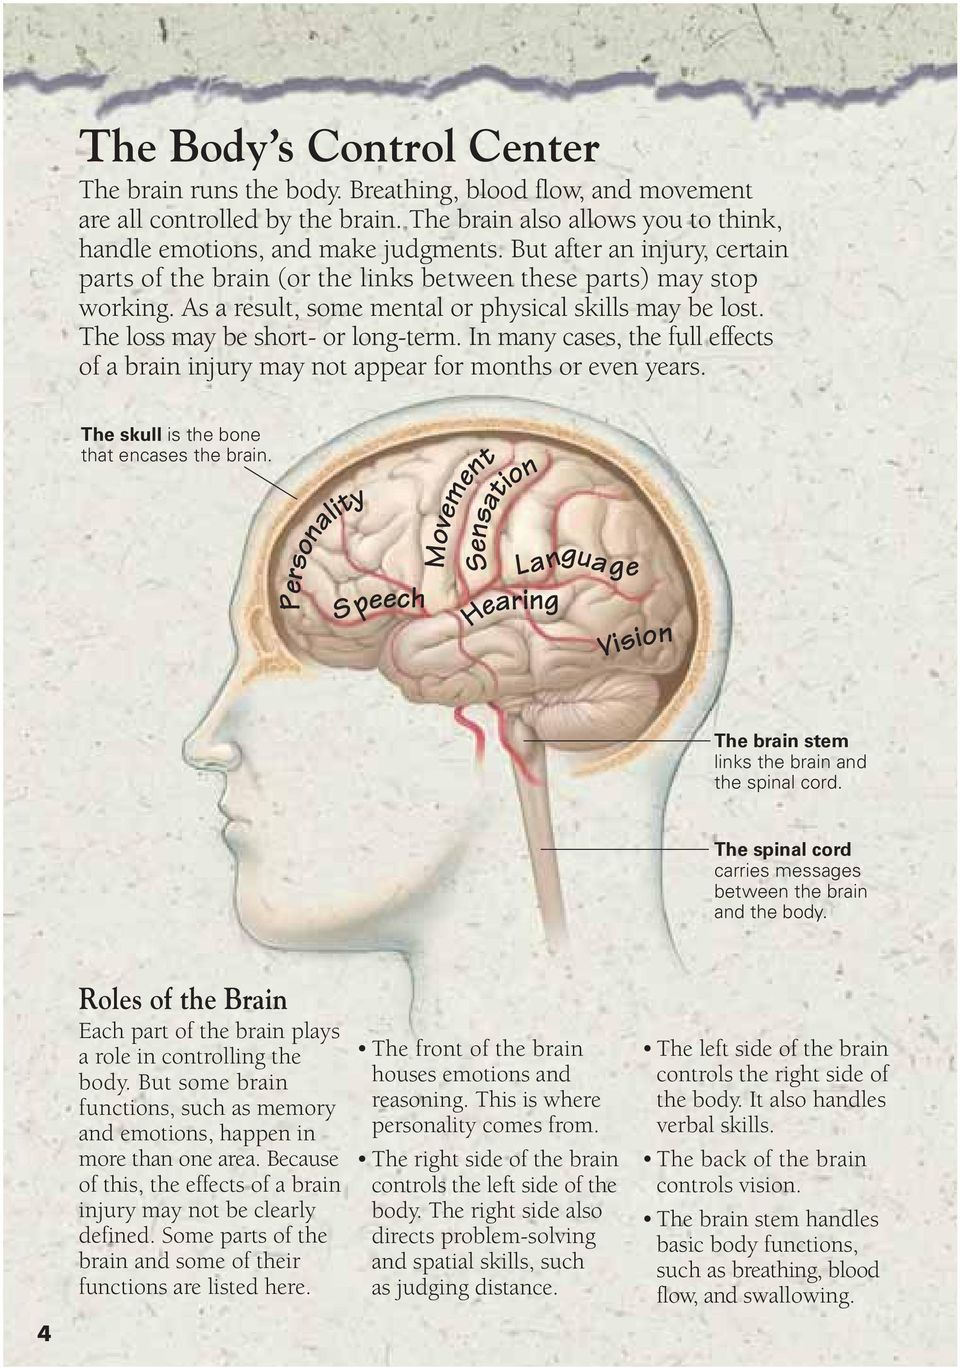 In many cases, the full effects of a brain injury may not appear for months or even years. The skull is the bone that encases the brain.